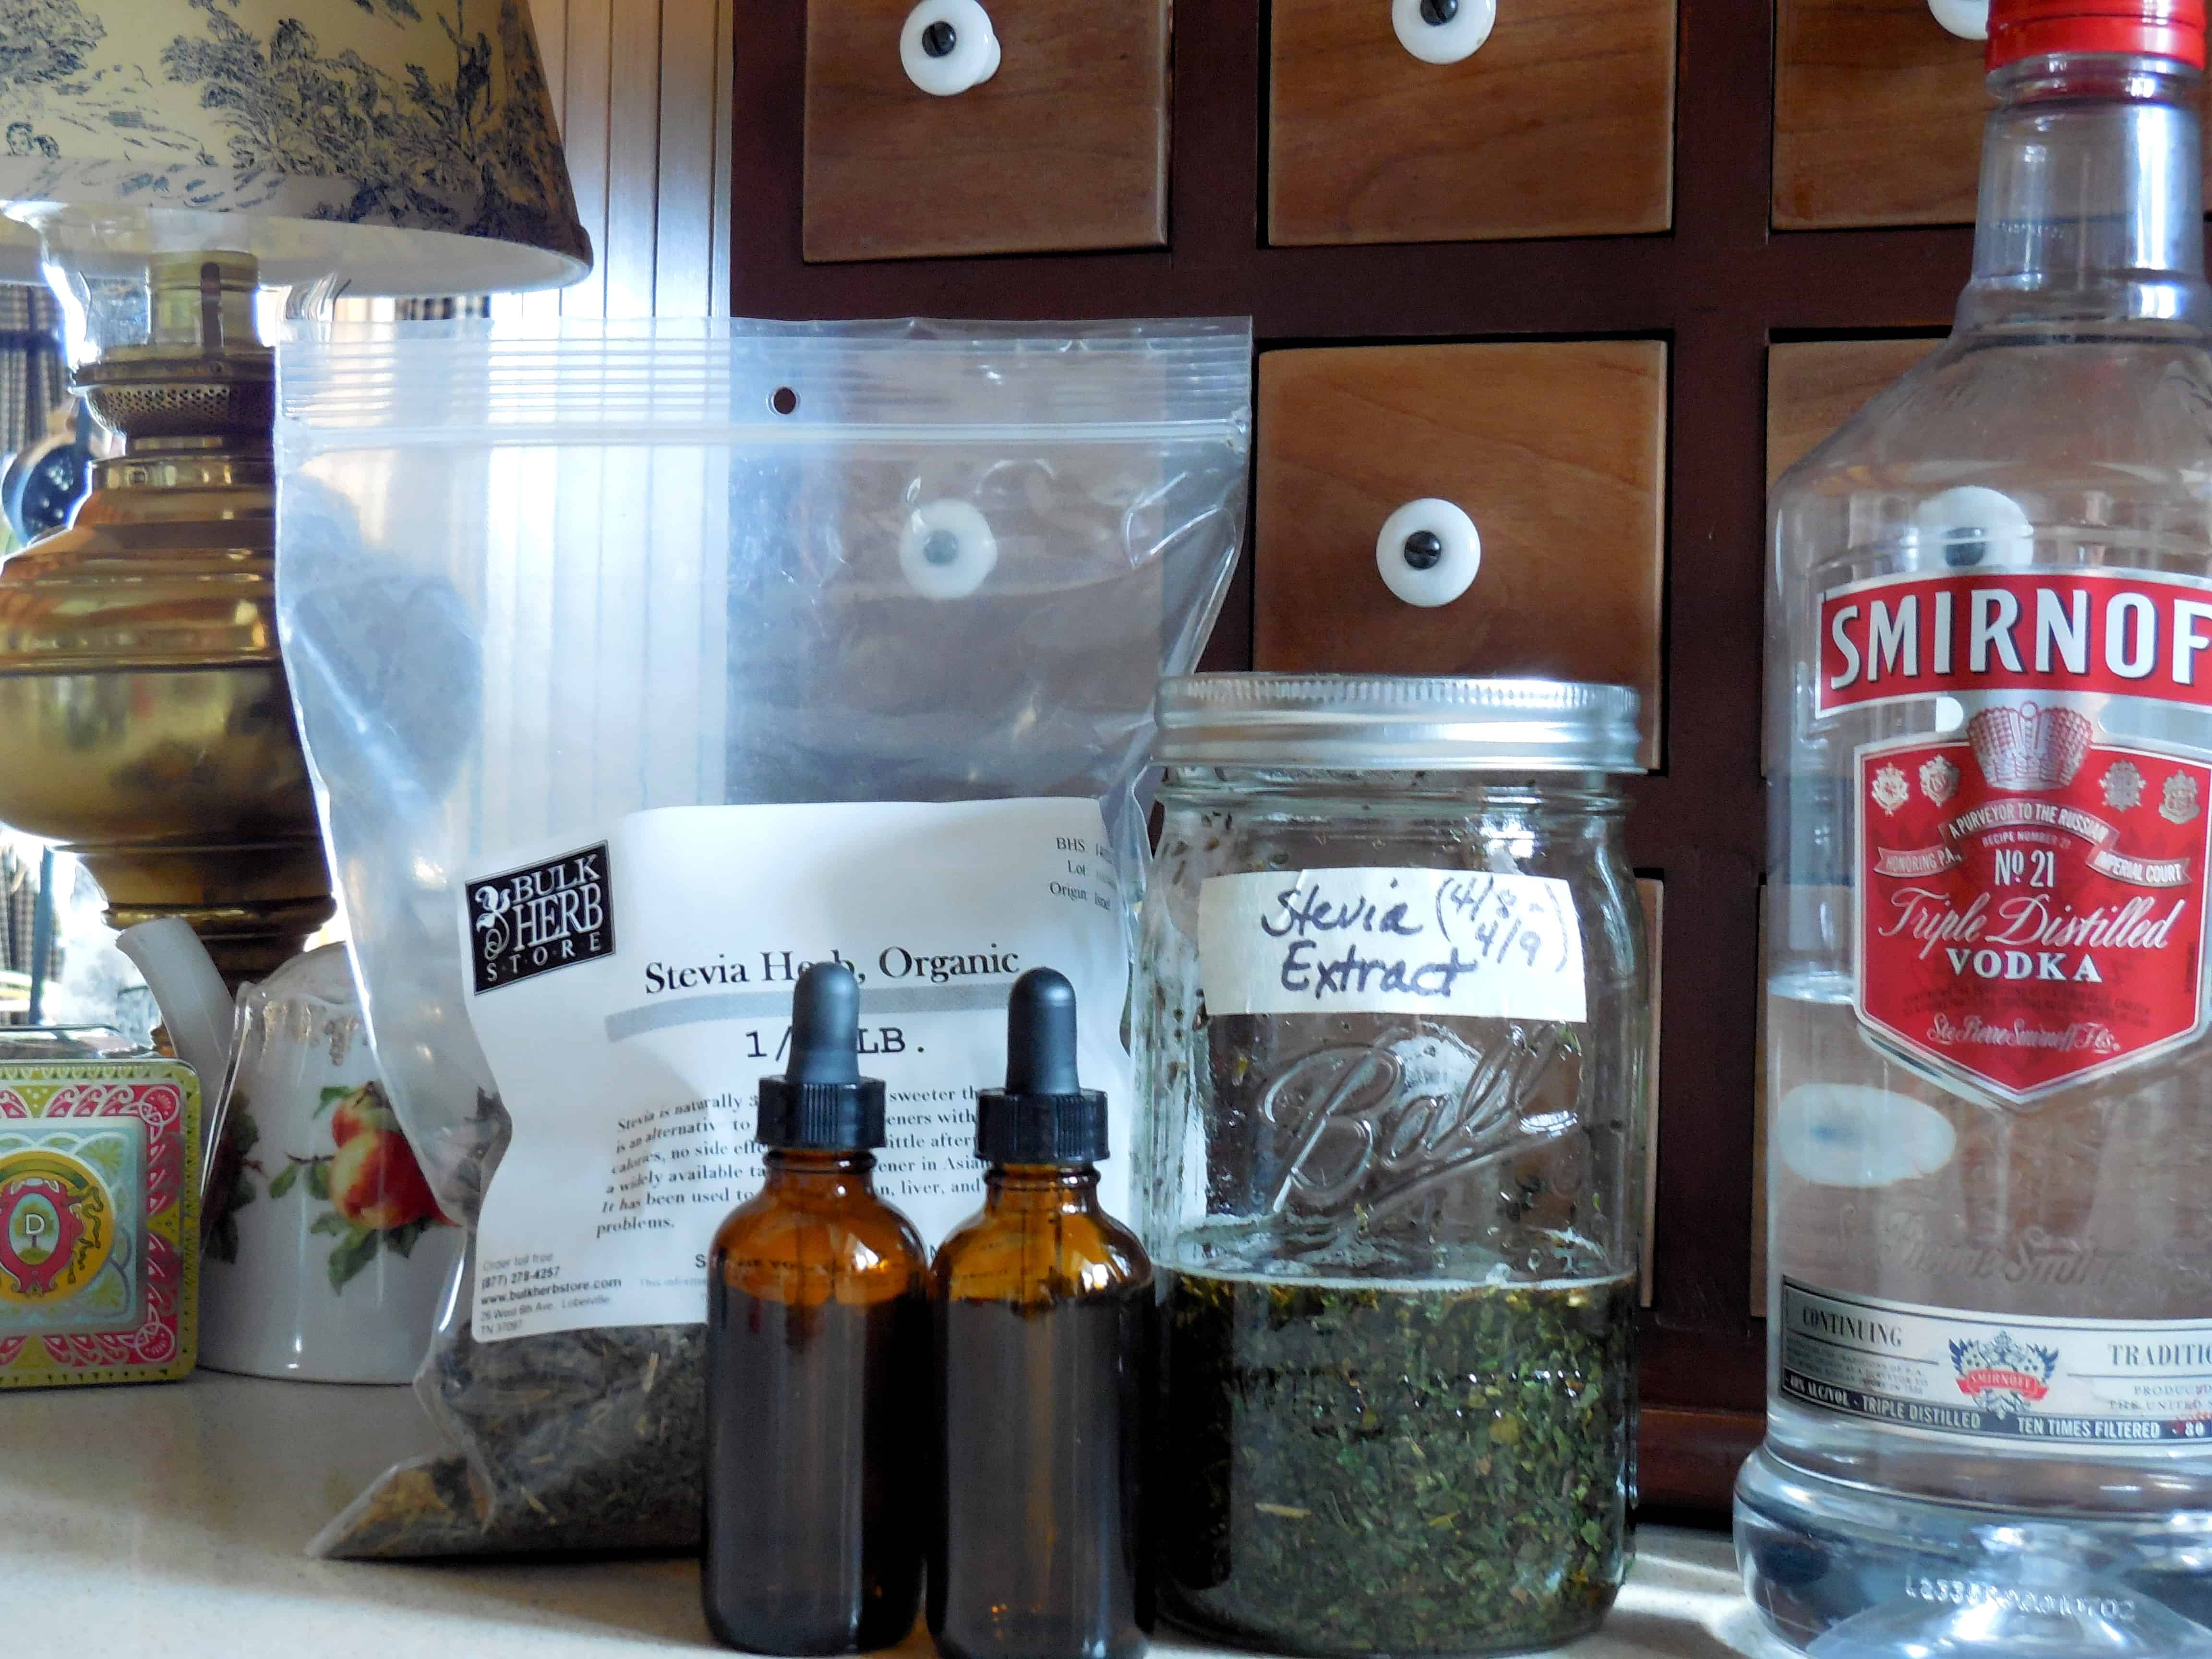 Making Dry Herbal Extracts At Home